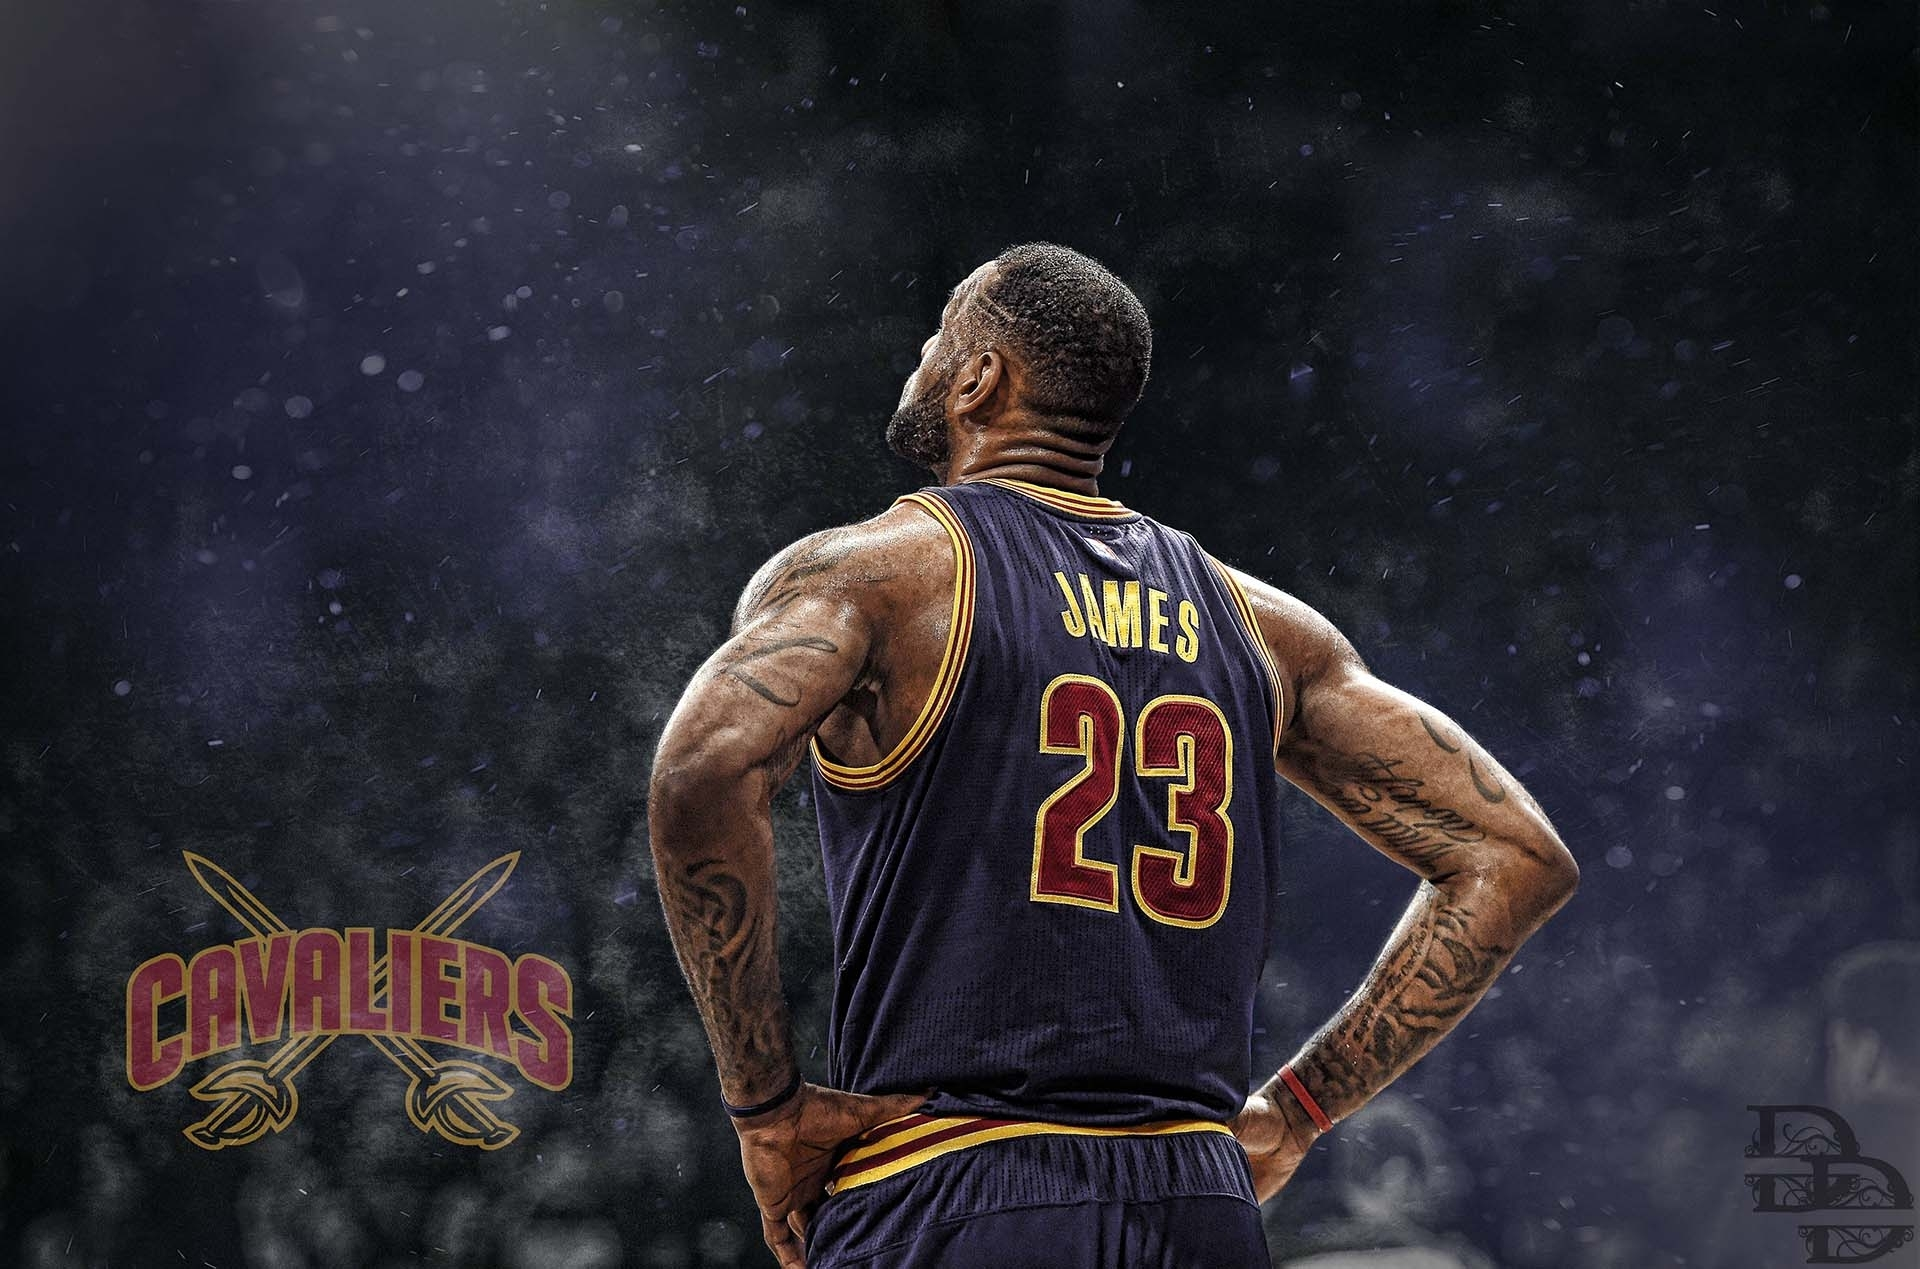 lebron james wallpaper hd for desktop, iphone & mobile